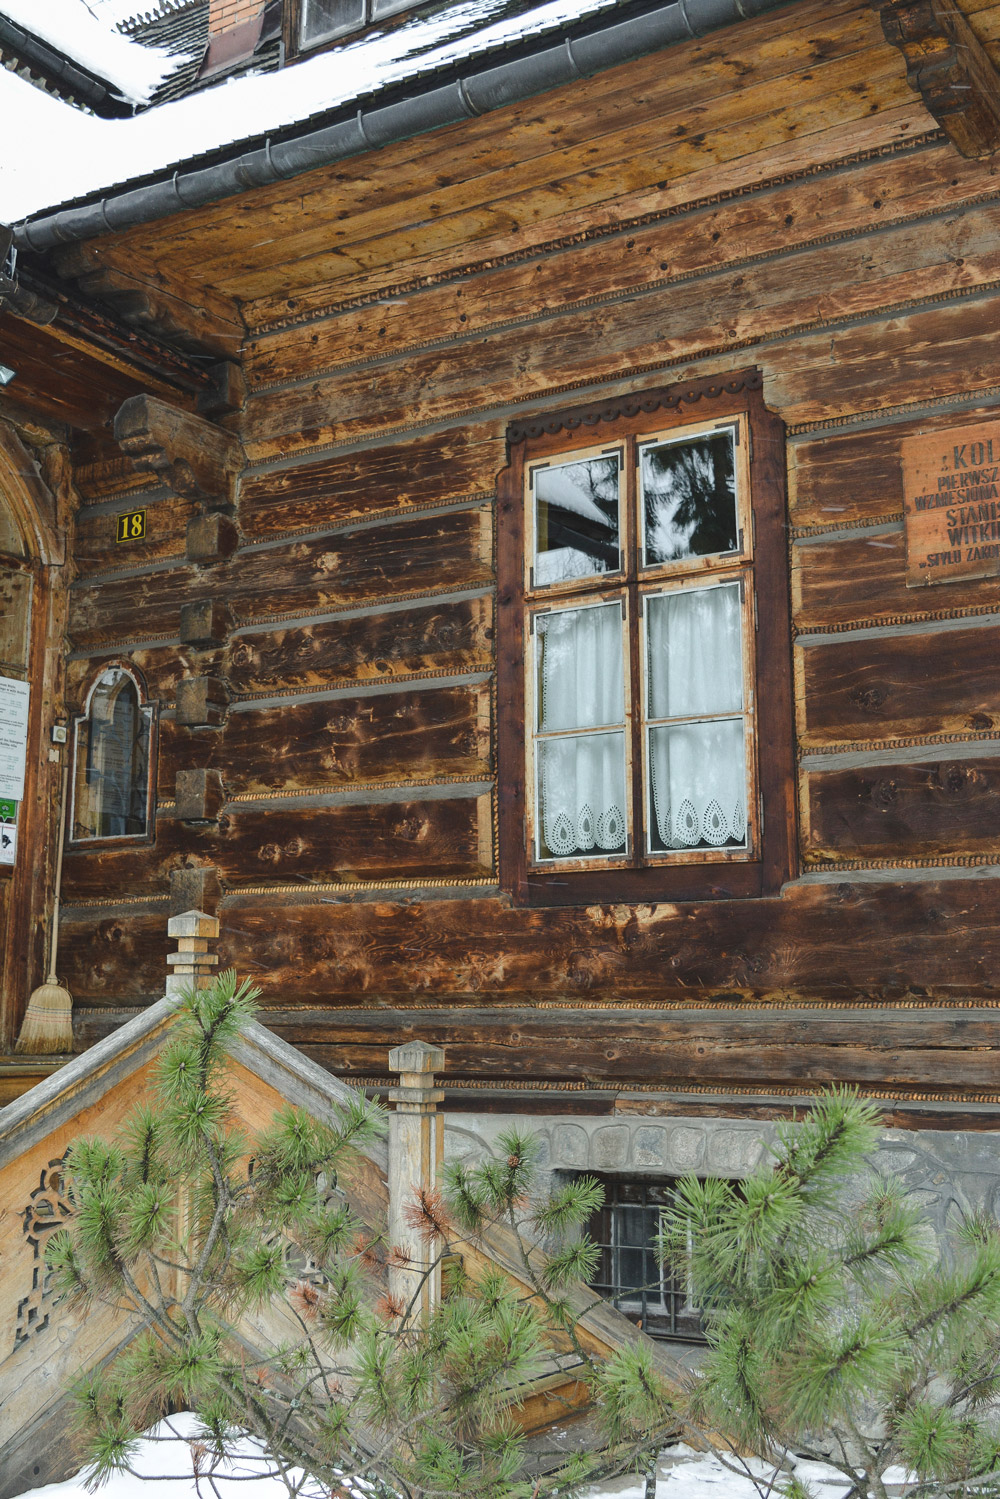 The Zakopane Style Museum is beautiful and a must visit in the region